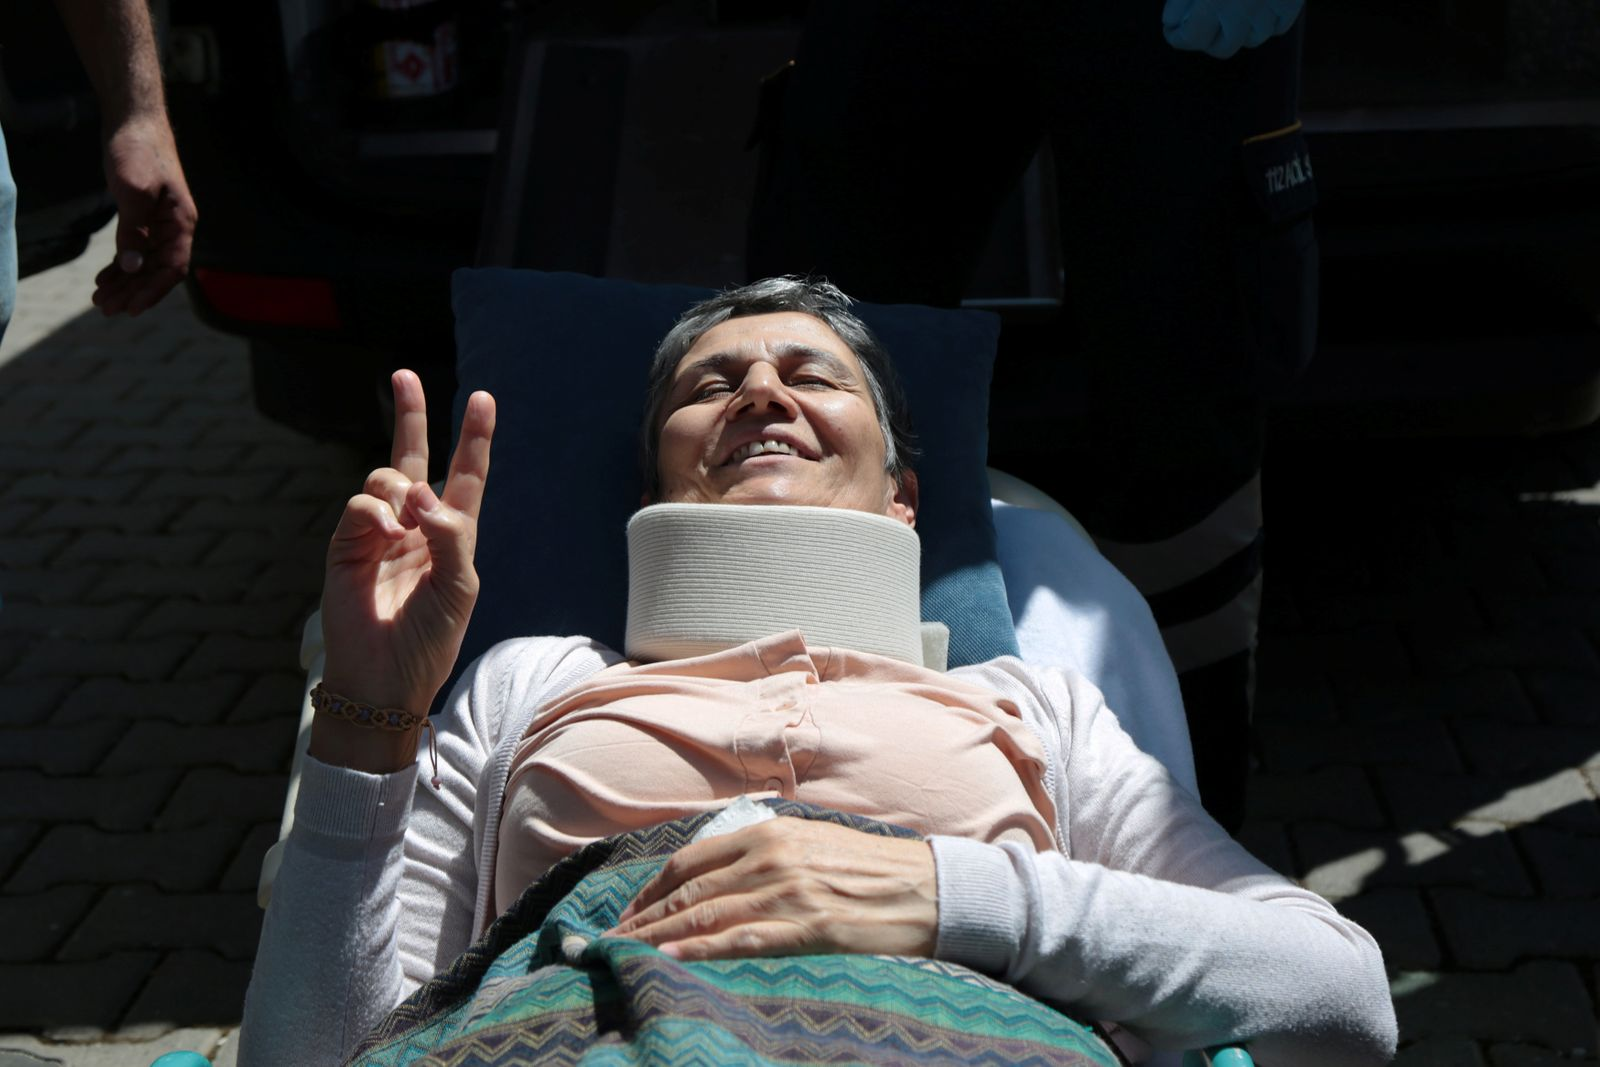 Pro-Kurdish HDP lawmaker Guven, who ends her hunger strike after a call from jailed militant leader Ocalan, leaves her home to go to hospital in Diyarbakir